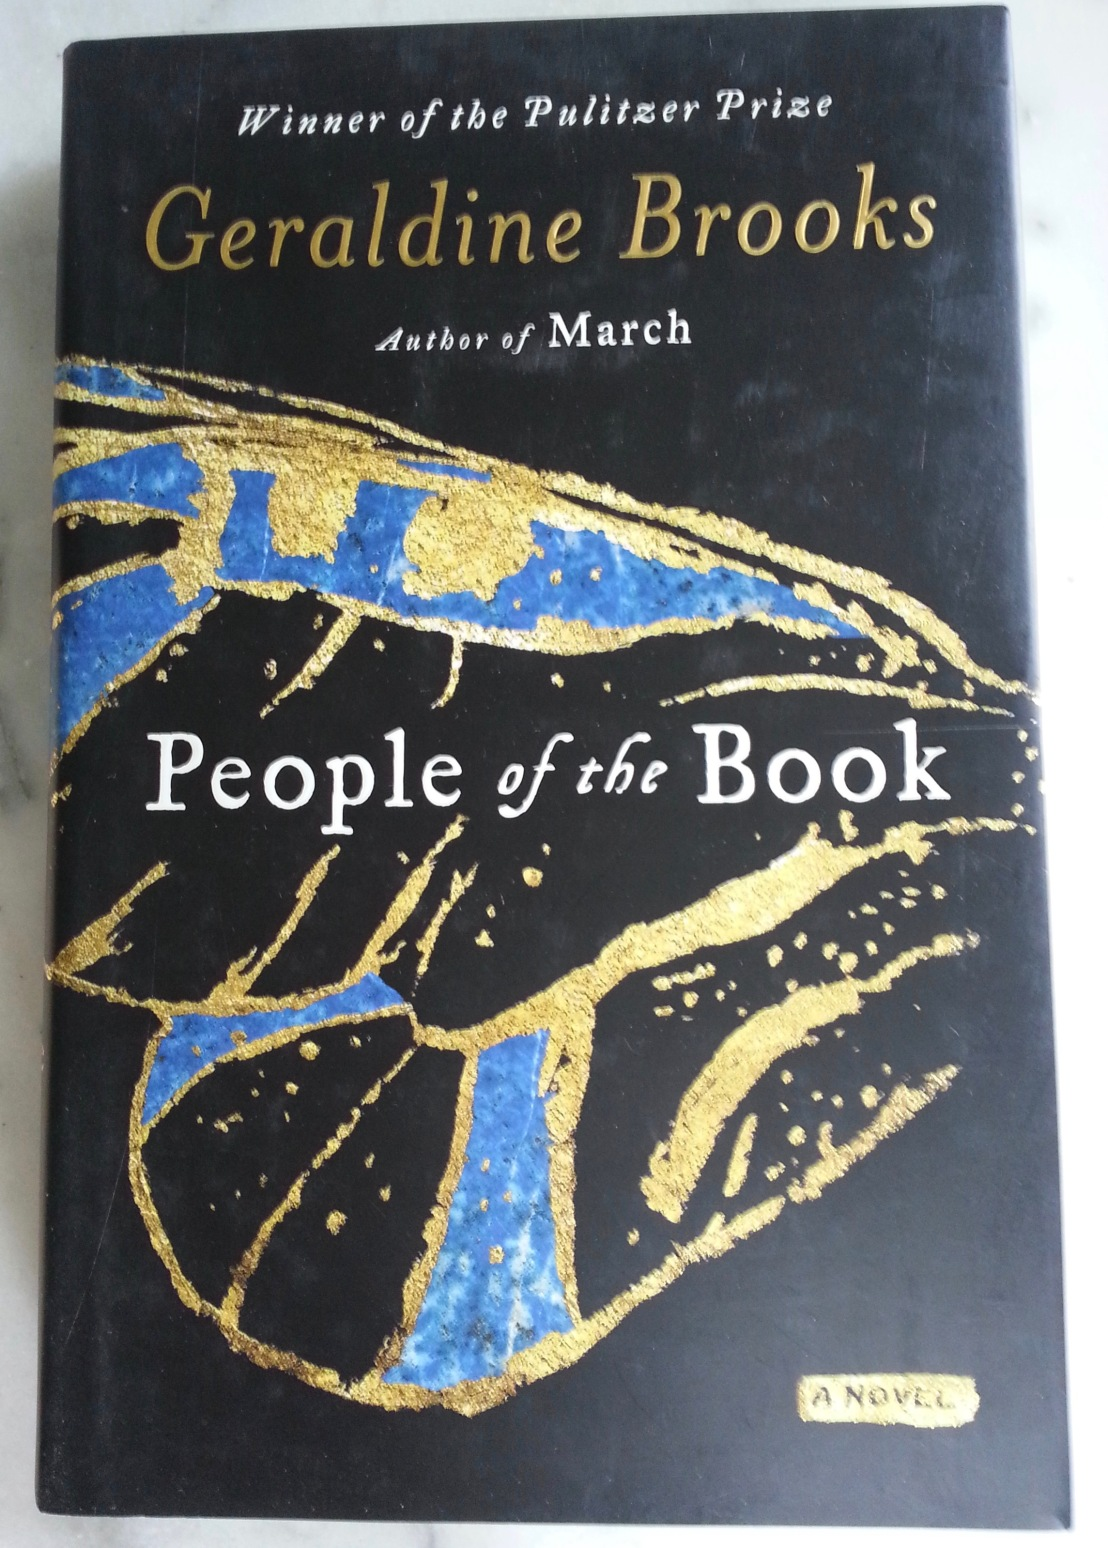 Geraldine Brooks' — People of the Book *****